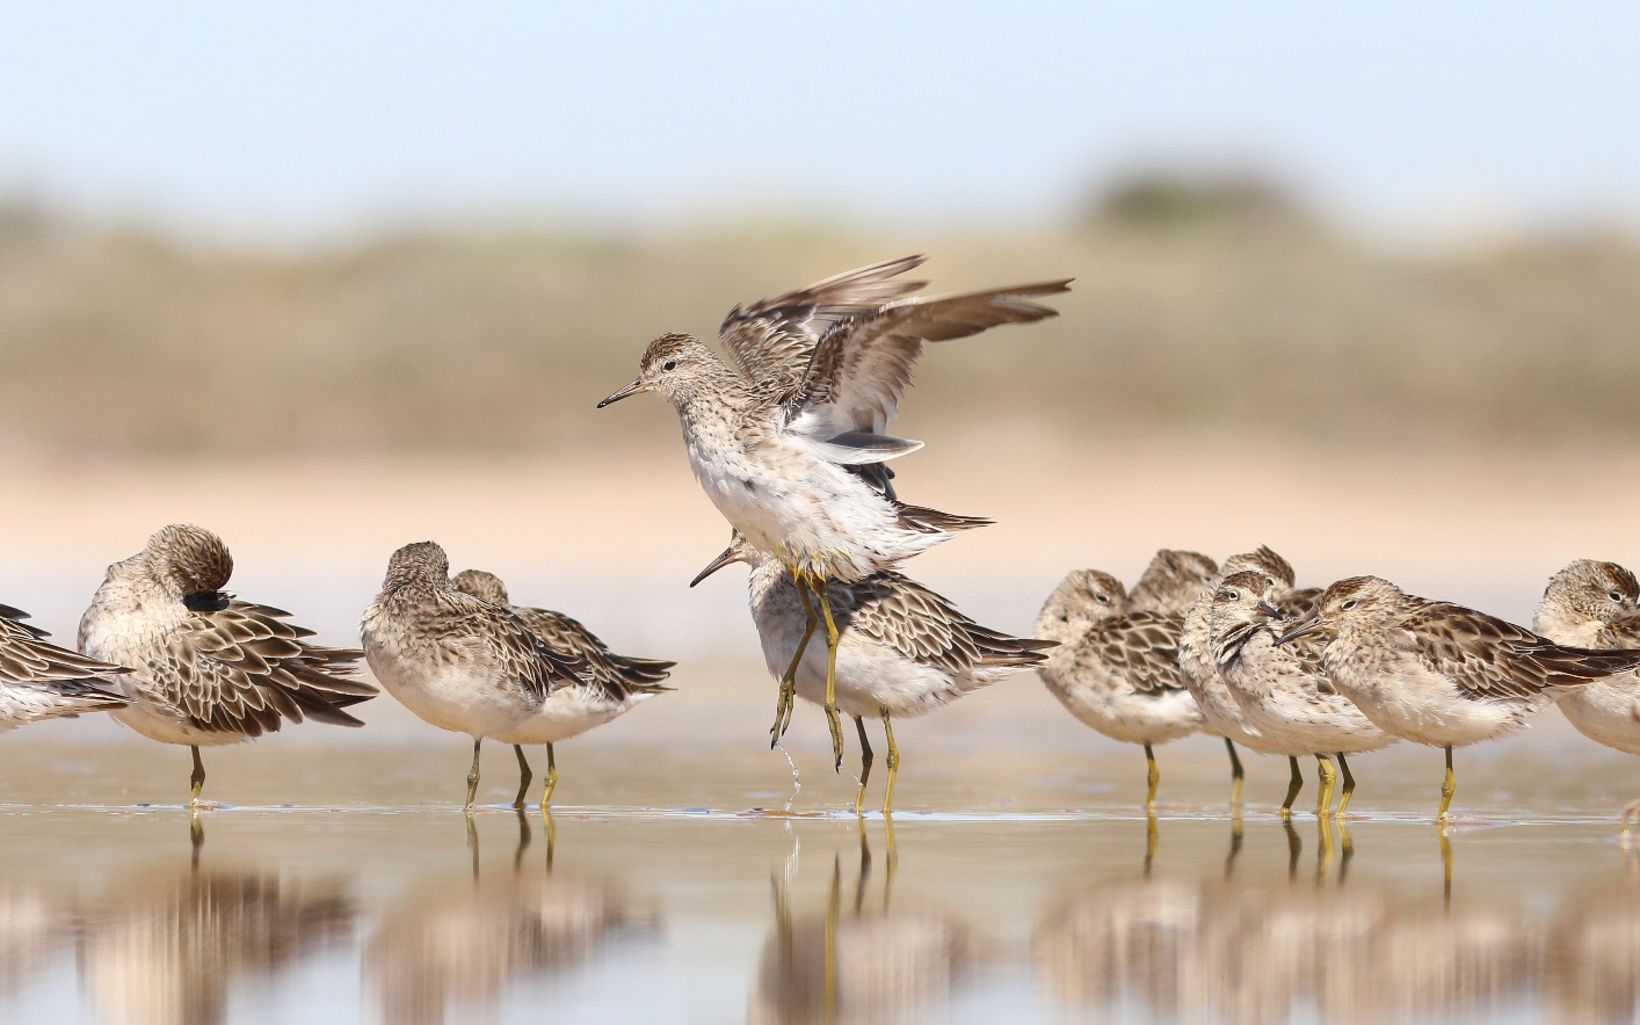 A migratory shorebird arriving in Australia in August, returning to Siberia in March, with greatest numbers in south-eastern Australia.